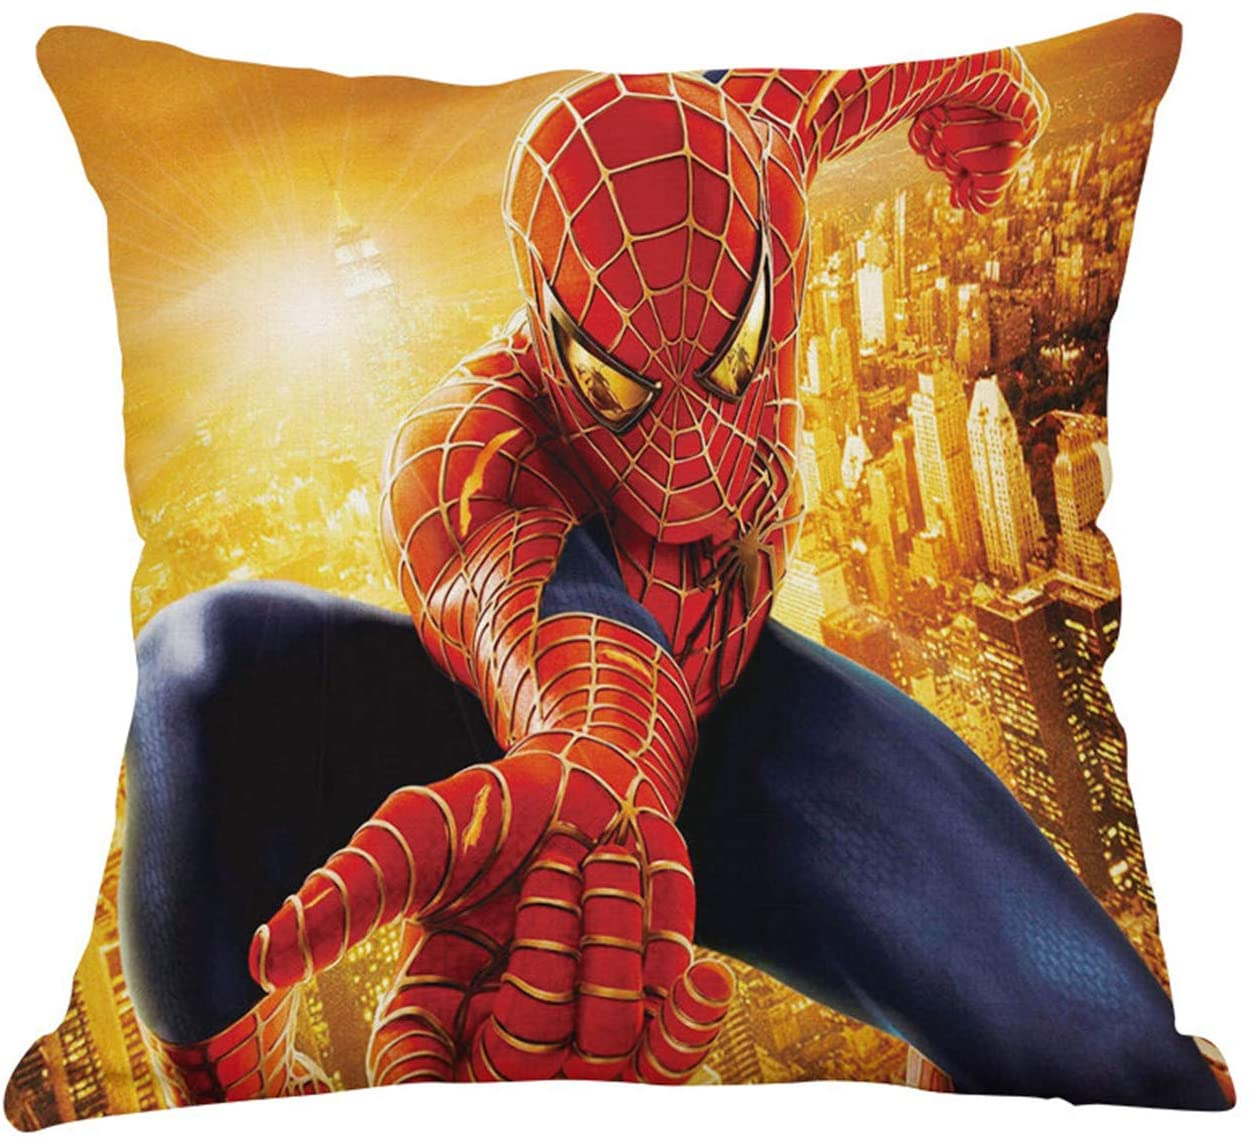 TE YANG Spider Man Pillow Cover Marvel Anime Pillow Case Soft Cotton Linen Cushion Cover Superheroes Decorative Pillow Cases for Sofa Bedroom Car 18x18 Inches(No Pillow Core)